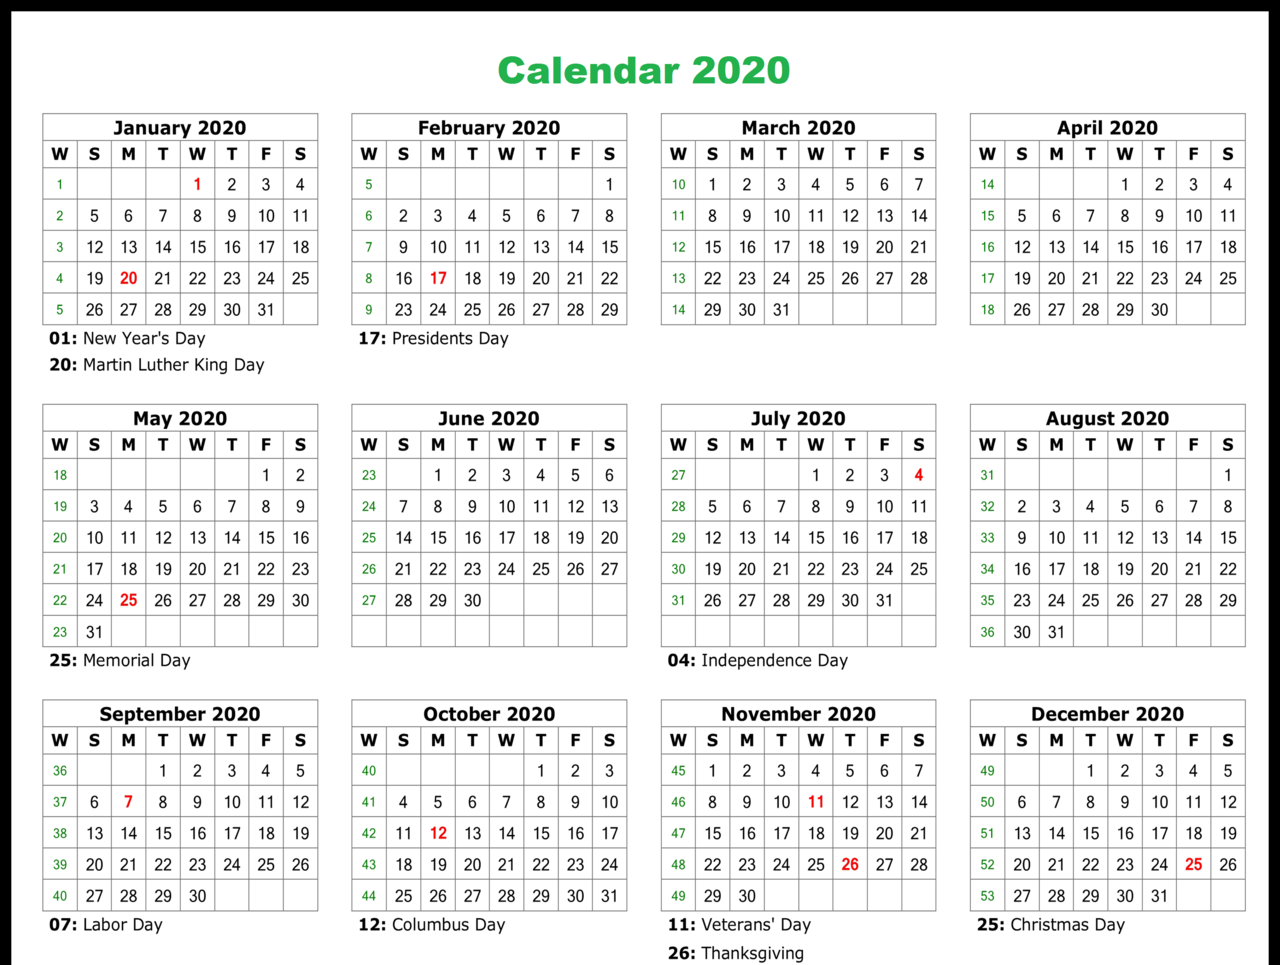 Free Printable Calendar 2020 Monthly Template With Holidays